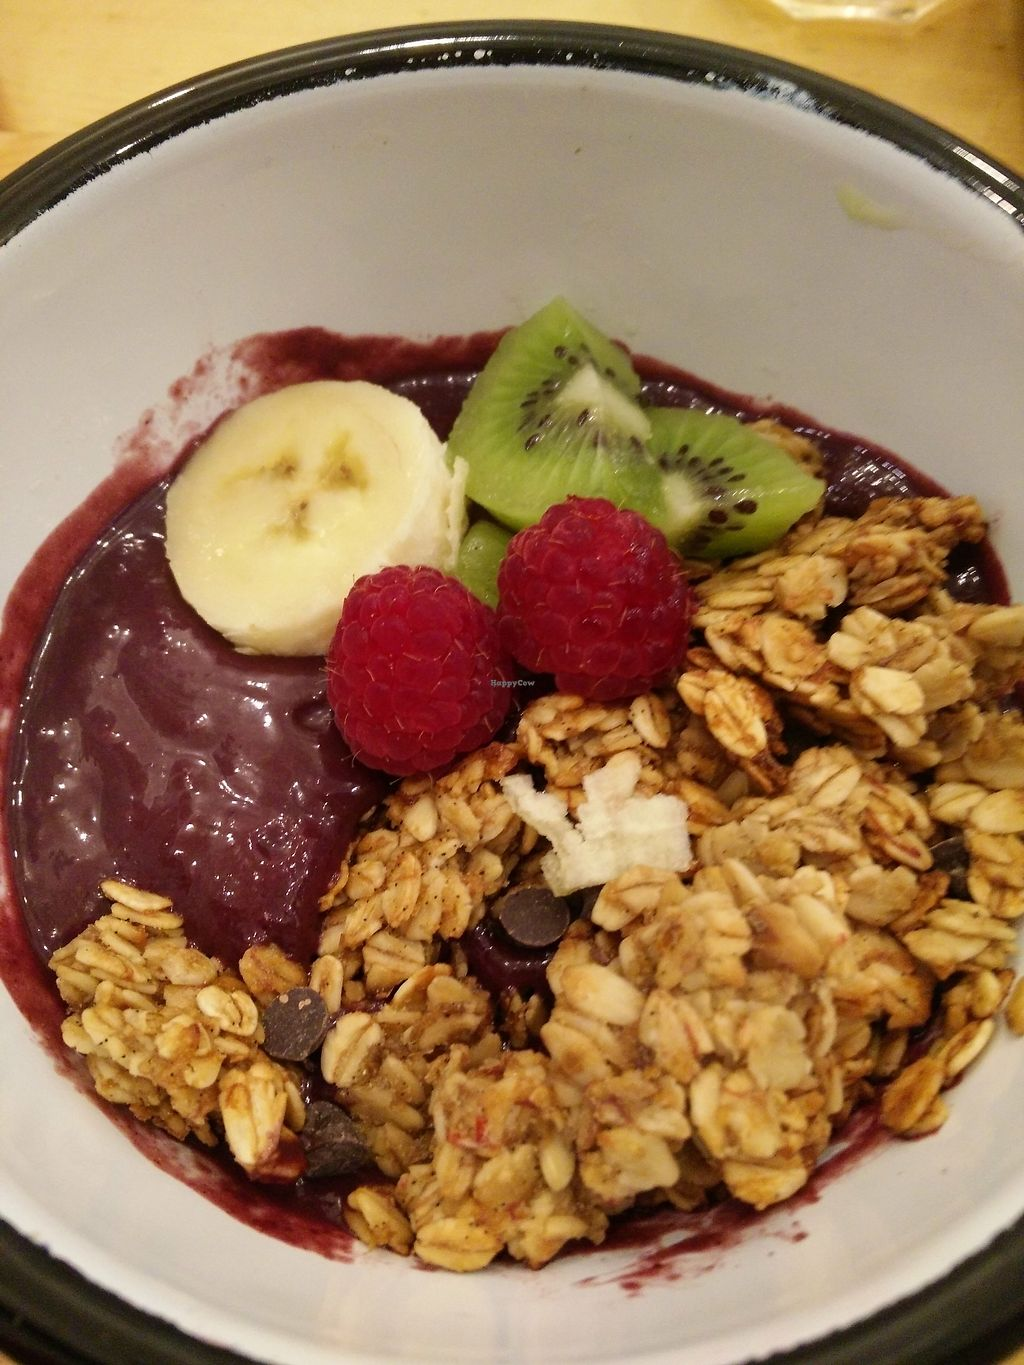 """Photo of Comptoir Veggie  by <a href=""""/members/profile/edensoul"""">edensoul</a> <br/>Açai bowl  <br/> August 12, 2017  - <a href='/contact/abuse/image/98252/291852'>Report</a>"""